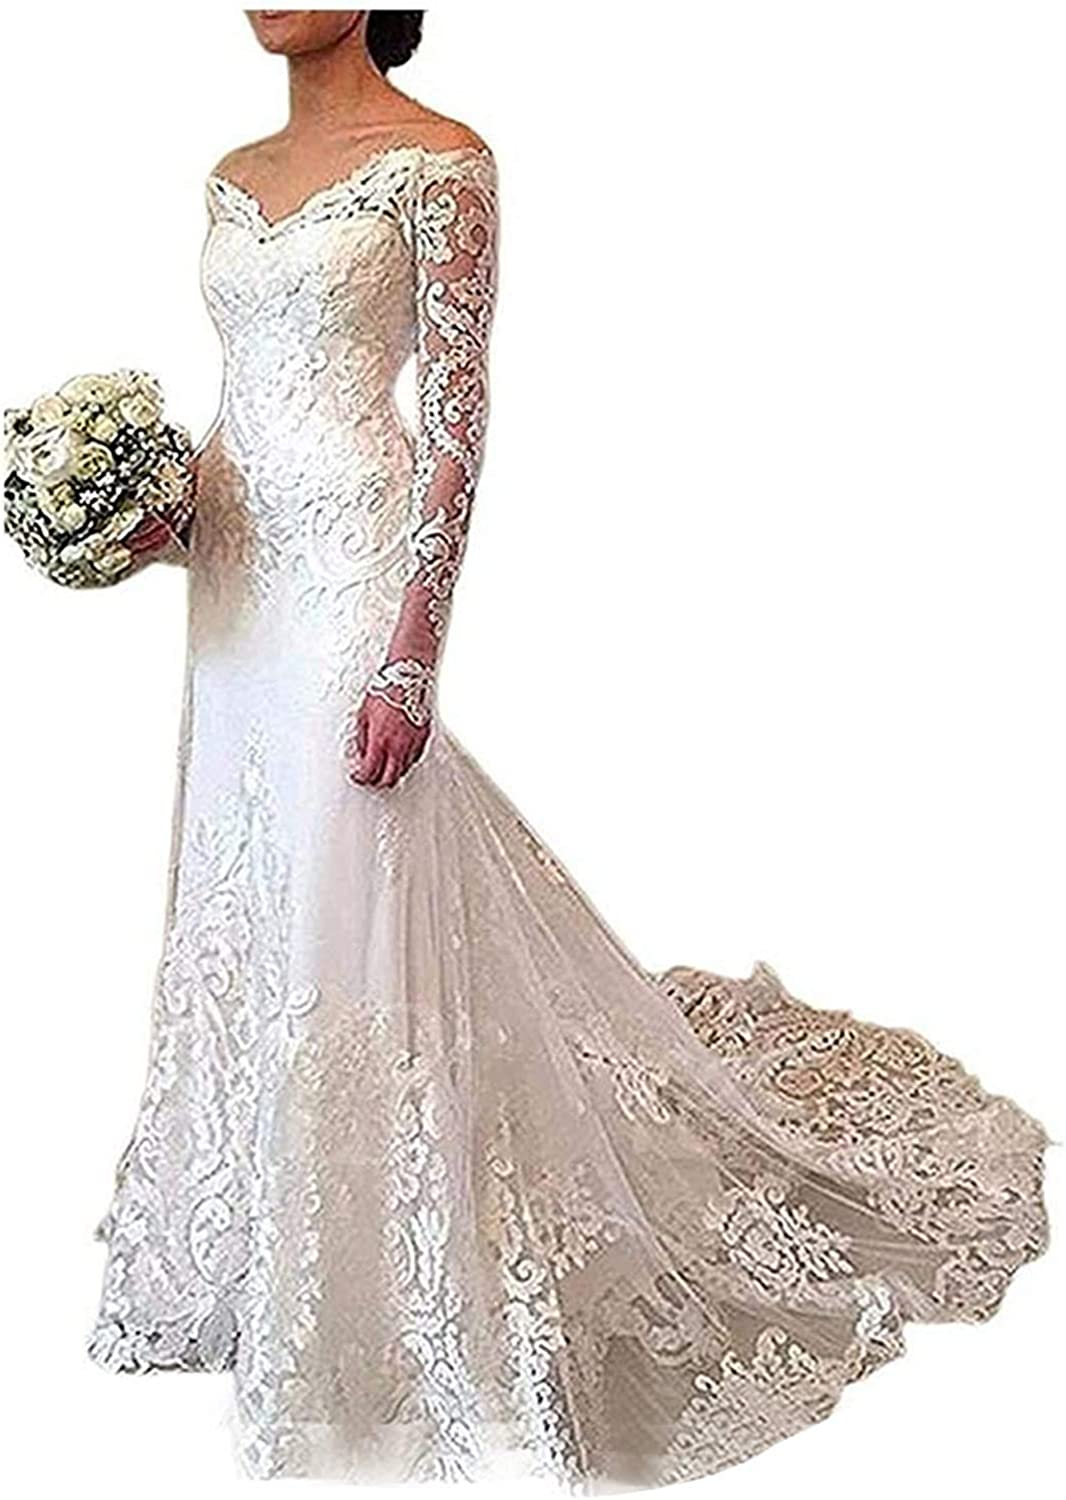 iluckin Women's Off Shoulder Long Sleeves Mermaid Lace Wedding Dress with Train for Bride Bridal Gown